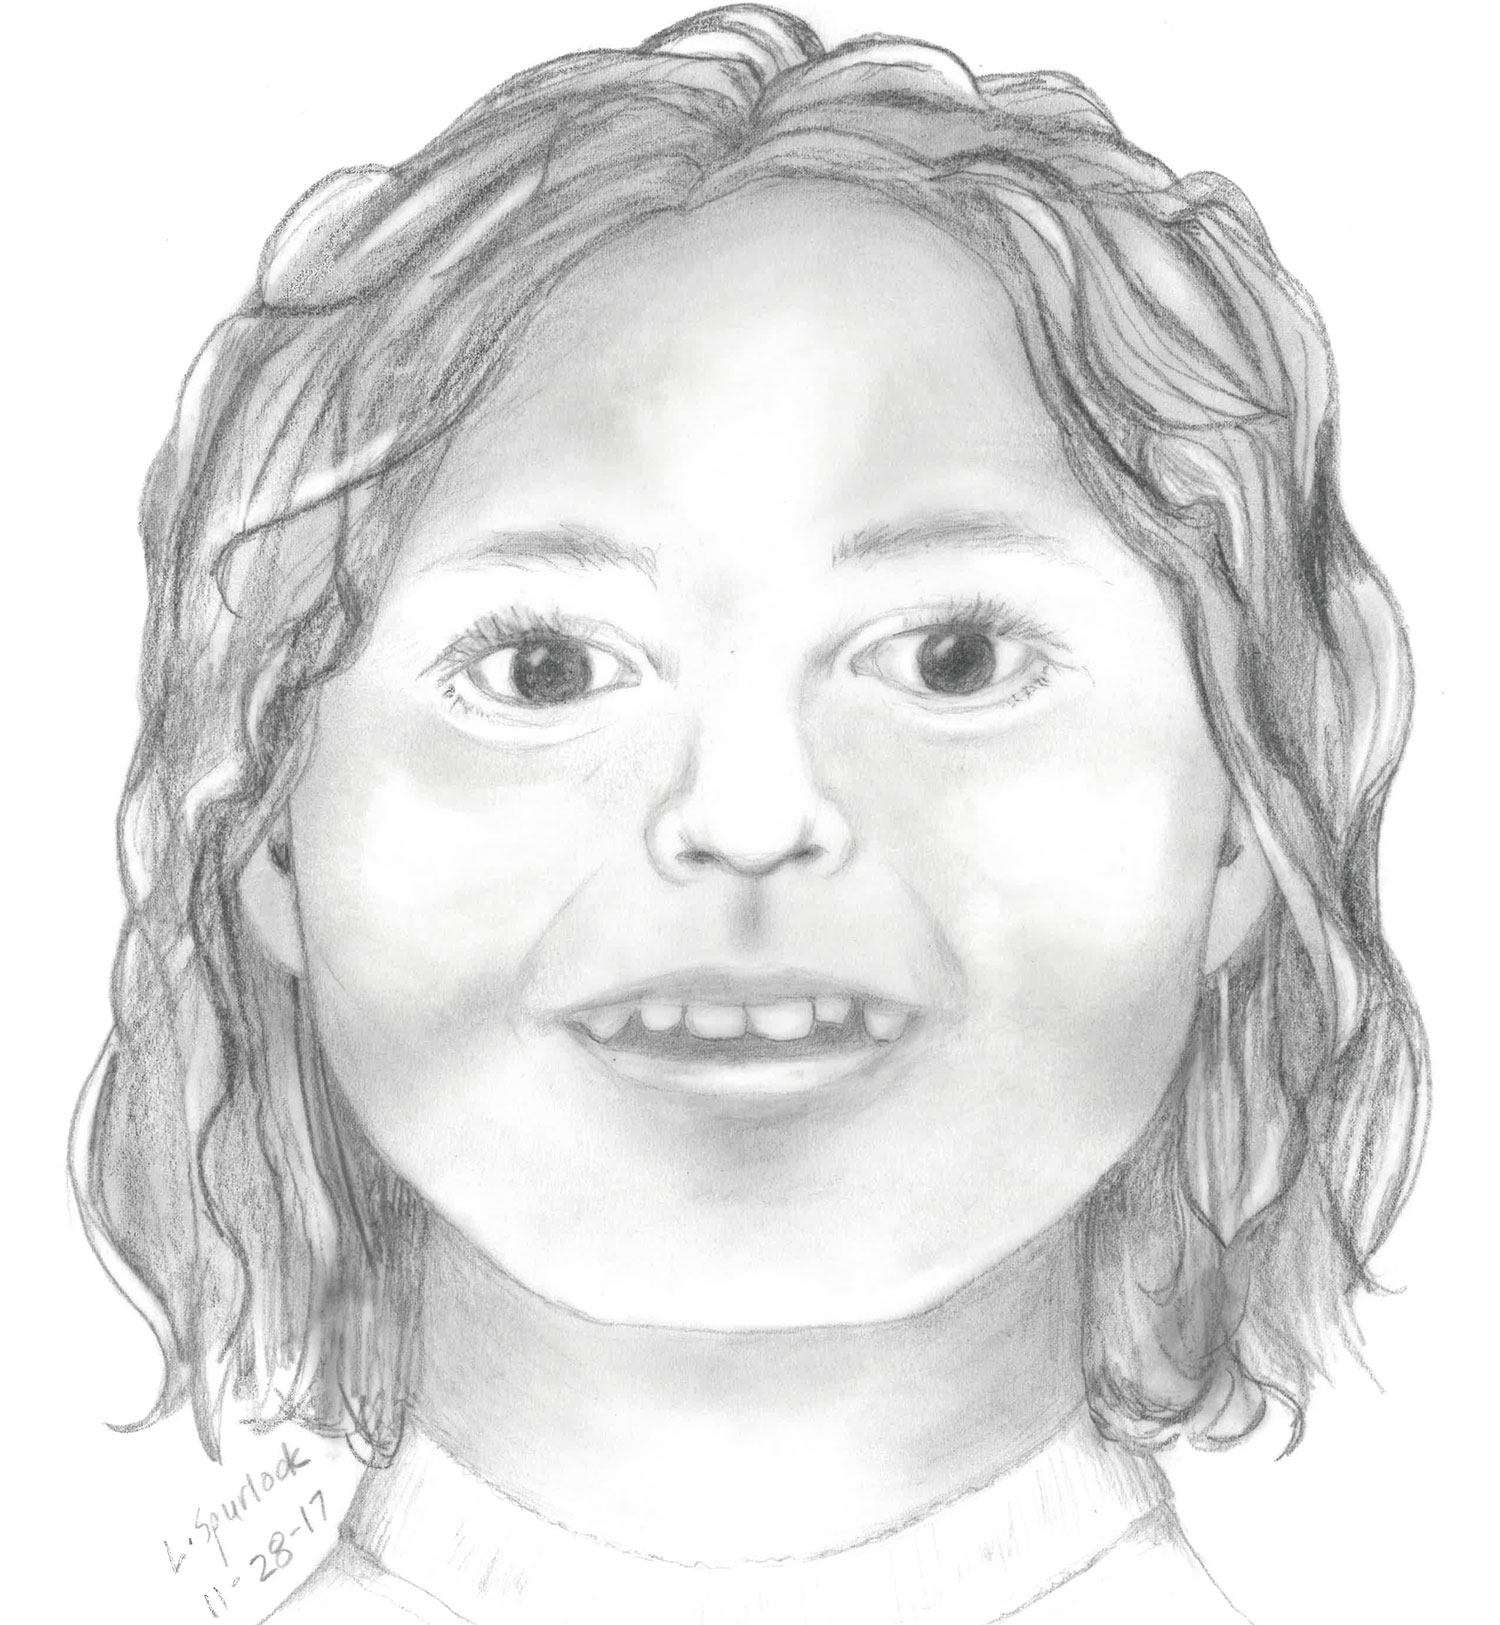 Photo of a sketch created by Linda Spurlock using forensic facial reconstruction.